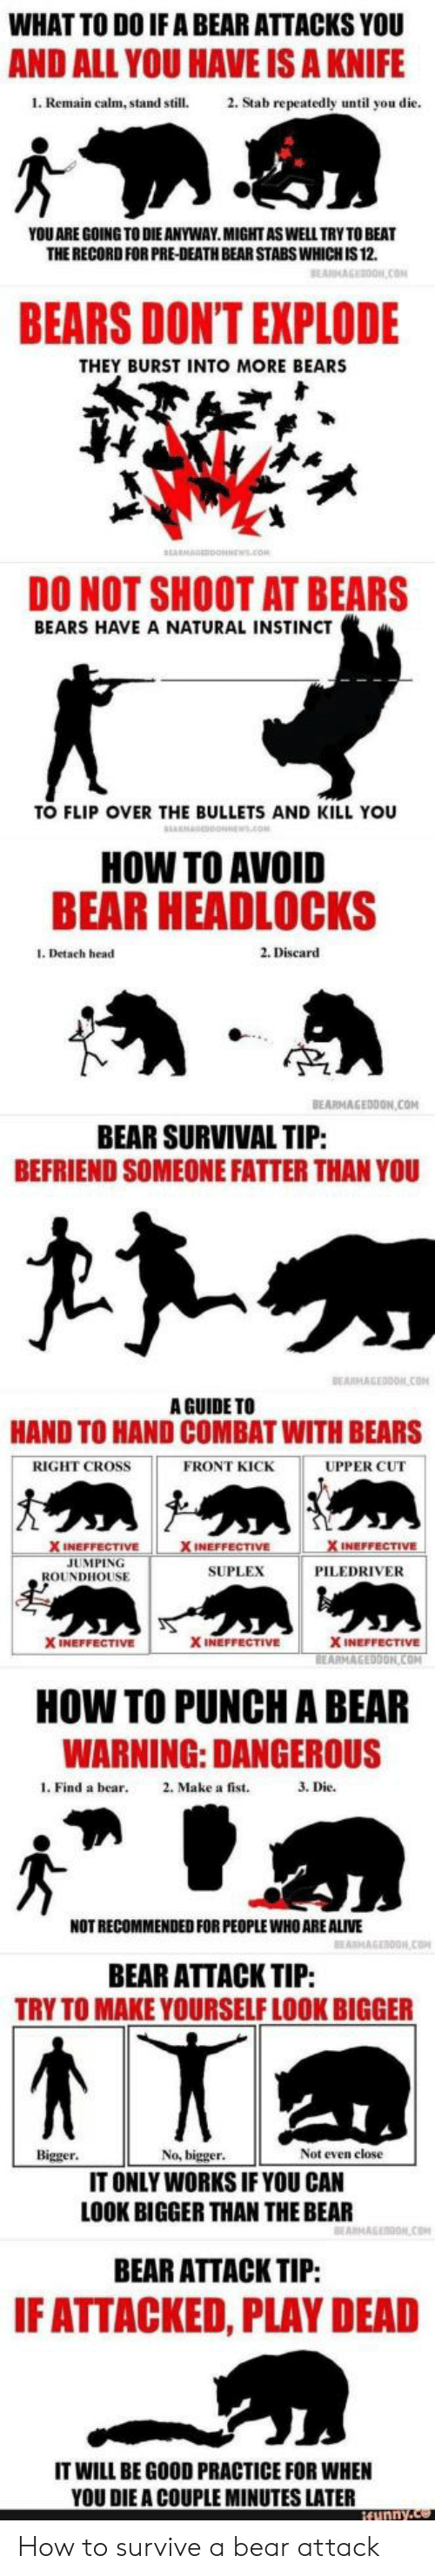 Alive, Head, and Bear: WHAT TO DO IF A BEAR ATTACKS YOU  AND ALL YOU HAVE IS A KNIFE  1. Remain calm, stand still.2. Stab repeatedly until you die  YOU ARE GOING TO DIE ANYWAY.MIGHTASWELL TRY TO BEAT  THE RECORD FOR PRE-DEATH BEAR STABS WHICH IS 12.  BEARS DONT EXPLODE  THEY BURST INTO MORE BEARS  DO NOT SHOOT AT BEARS  BEARS HAVE A NATURAL INSTINCT  TO FLIP OVER THE BULLETS AND KILL YOU  HOW TO AVOID  BEAR HEADLOCKS  1. Detach head  2. Discard  TP  BEARMAGEDDON COM  BEAR SURVIVAL TIP  BEFRIEND SOMEONE FATTER THAN YOU  A GUIDE TO  HAND TO HAND COMBAT WITH BEARS  RIGHT CROSS  FRONT KICK  UPPER CUT  INEFFECTIVE  JUMPING  SUPLEX  PILEDRIVER  ROUNDHOUSE  X INEFFECTIVE  X INEFFECTIVE  ON  HOW TO PUNCH A BEAR  WARNING: DANGEROUS  l. Find a bear 2. Make a fist.  3. Die.  NOT RECOMMENDED FOR PEOPLE WHO ARE ALIVE  BEAR ATTACK TIP:  TRY TO MAKE YOURSELF LOOK BIGGER  Bigger  No, bigger  Not even close  IT ONLY WORKS IF YOU CAN  LOOK BIGGER THAN THE BEAR  BEAR ATTACK TIP:  F ATTACKED, PLAY DEAD  IT WILL BE GOOD PRACTICE FOR WHEN  YOU DIE A COUPLE MINUTES LATER How to survive a bear attack